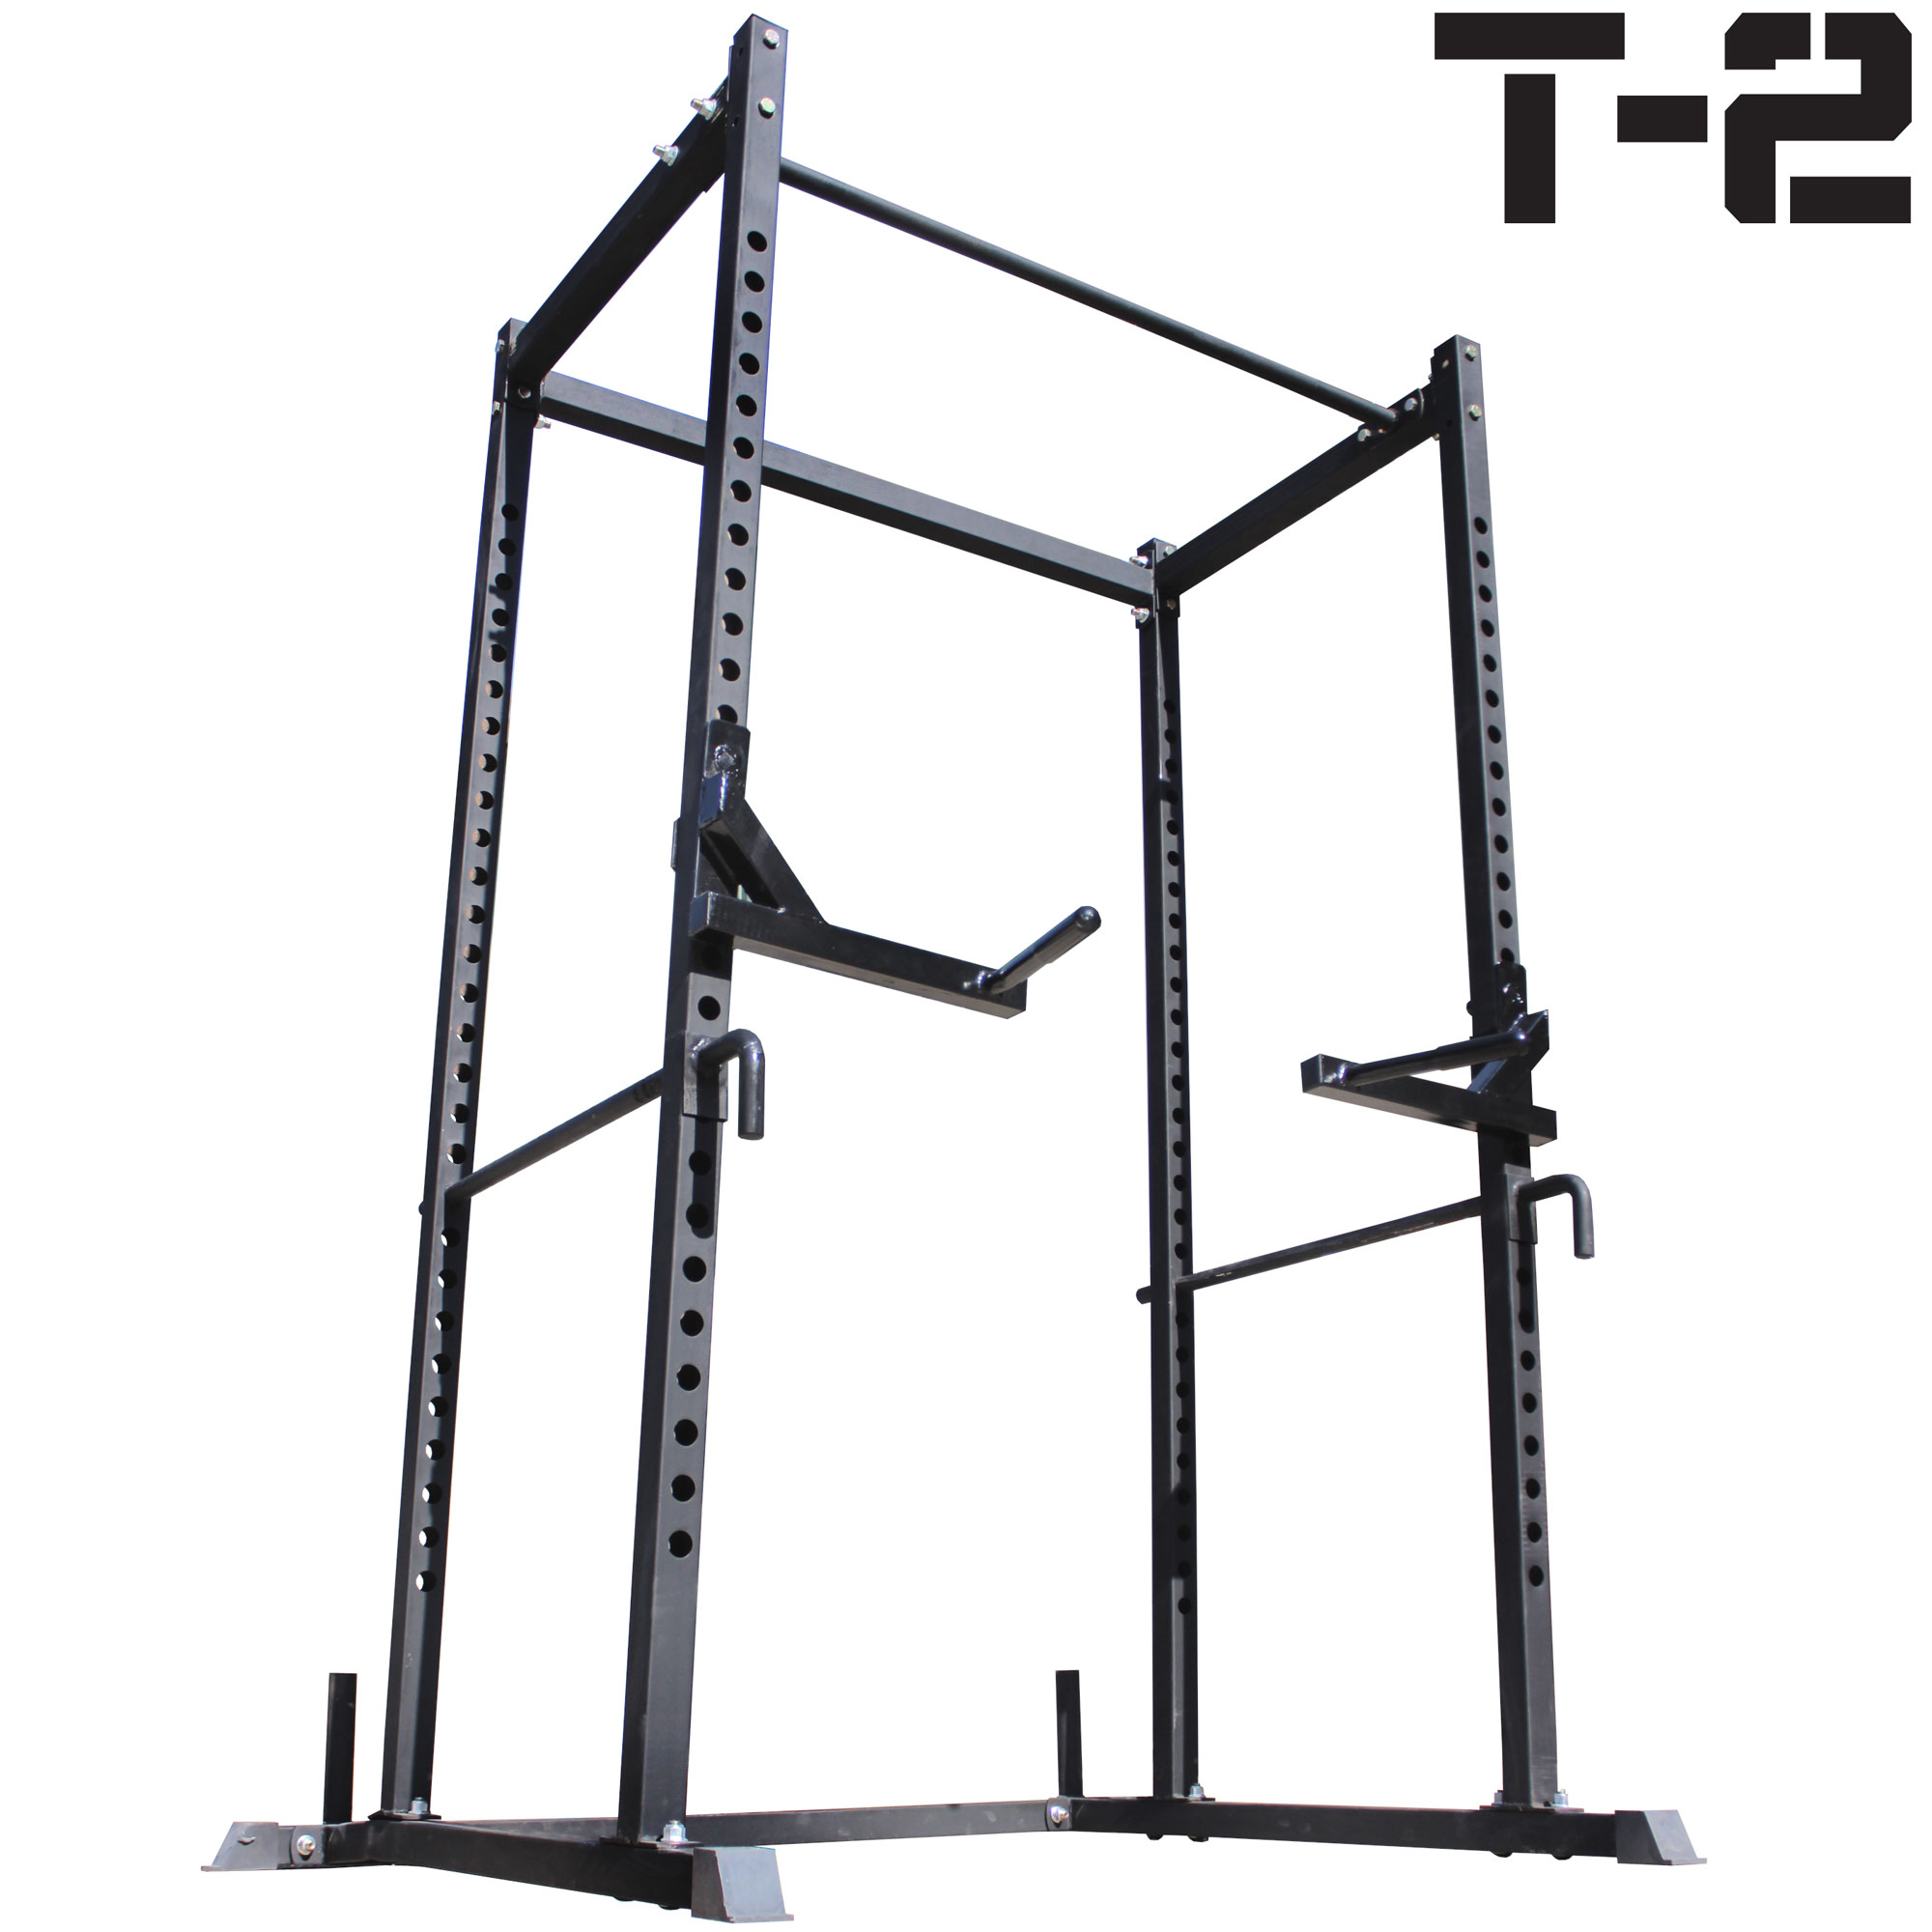 Titan T2 Power Rack Squat Deadlift Lift Cage Bench Racks Cross Fit Stand Pull Up Ebay